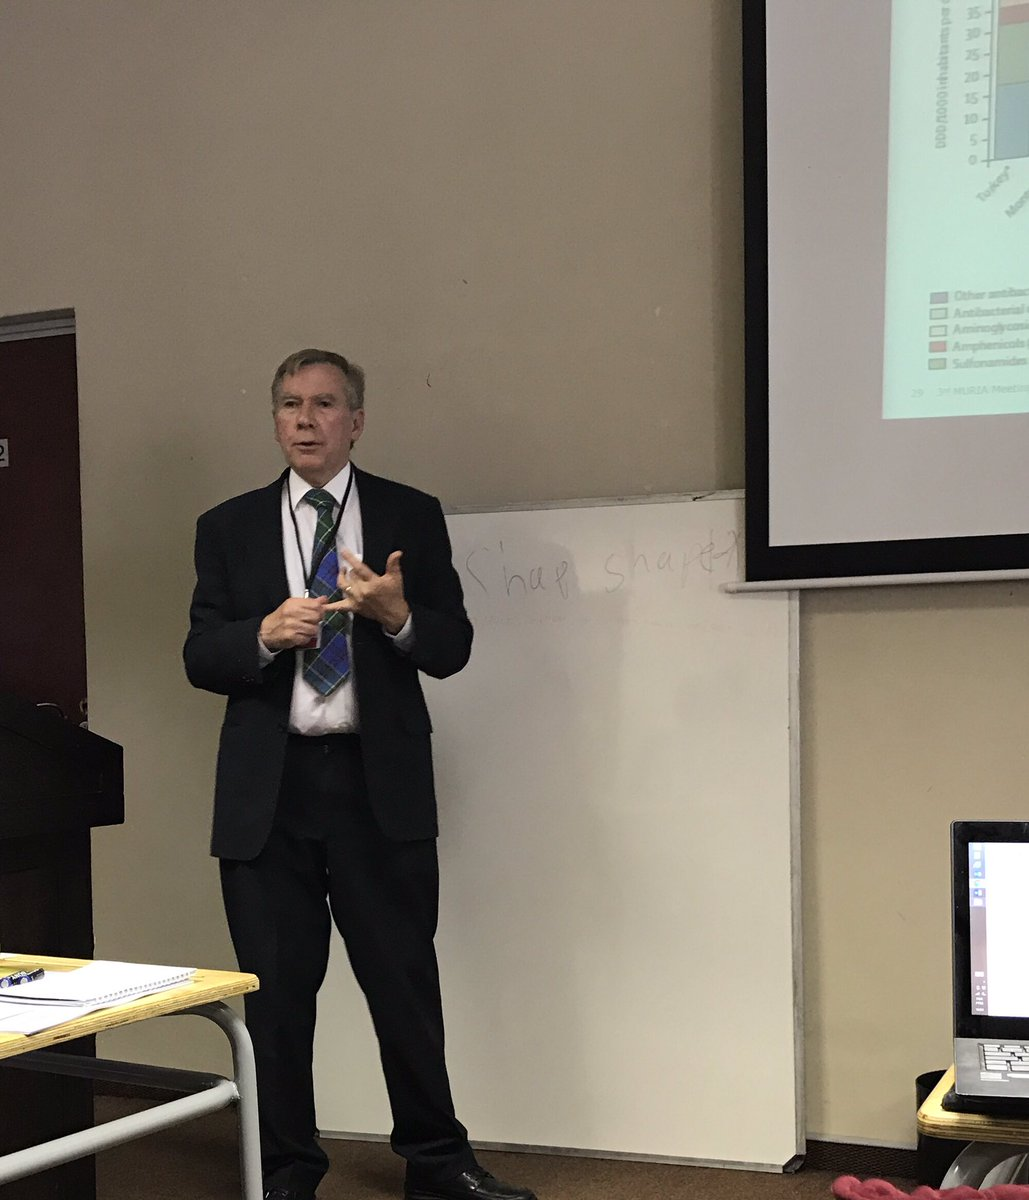 Brian Godman presenting on developing &amp; implementing #quality #indicators for #DUR studies #muria2017 #Namibia @SMU_PHPM @SMUClinPharm<br>http://pic.twitter.com/3yrPOLGPRD